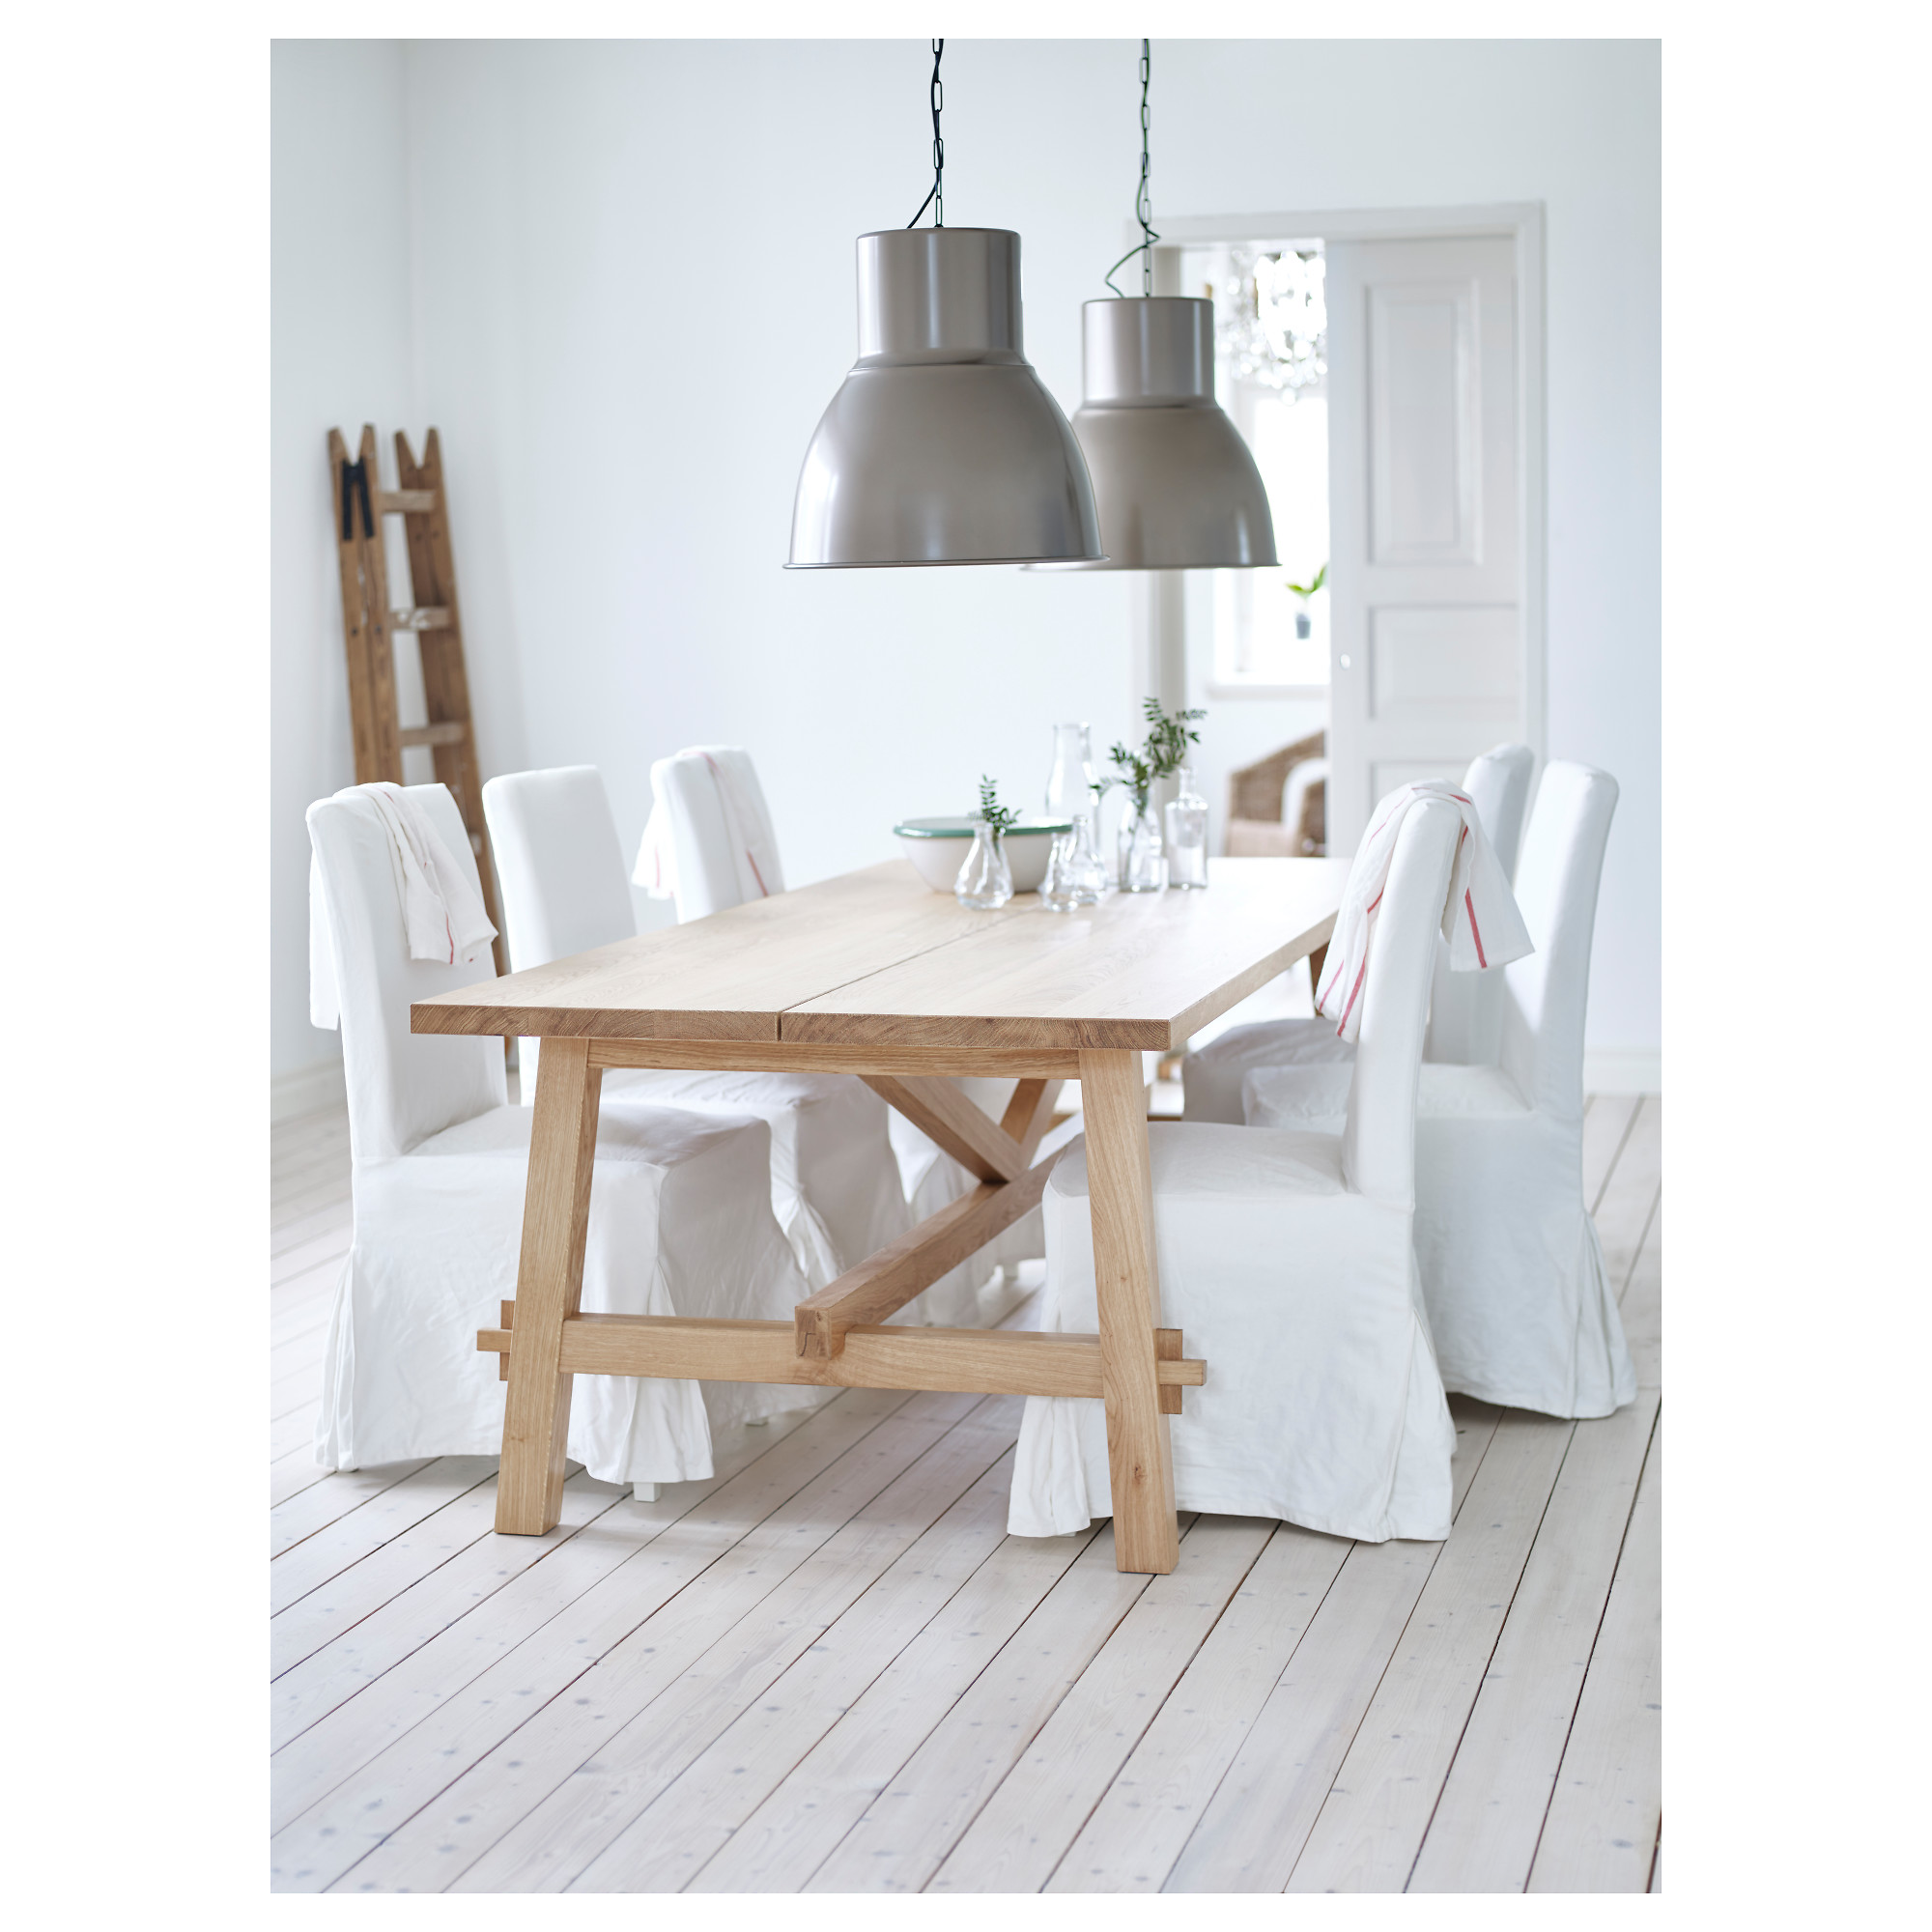 ma ckelby table ikea